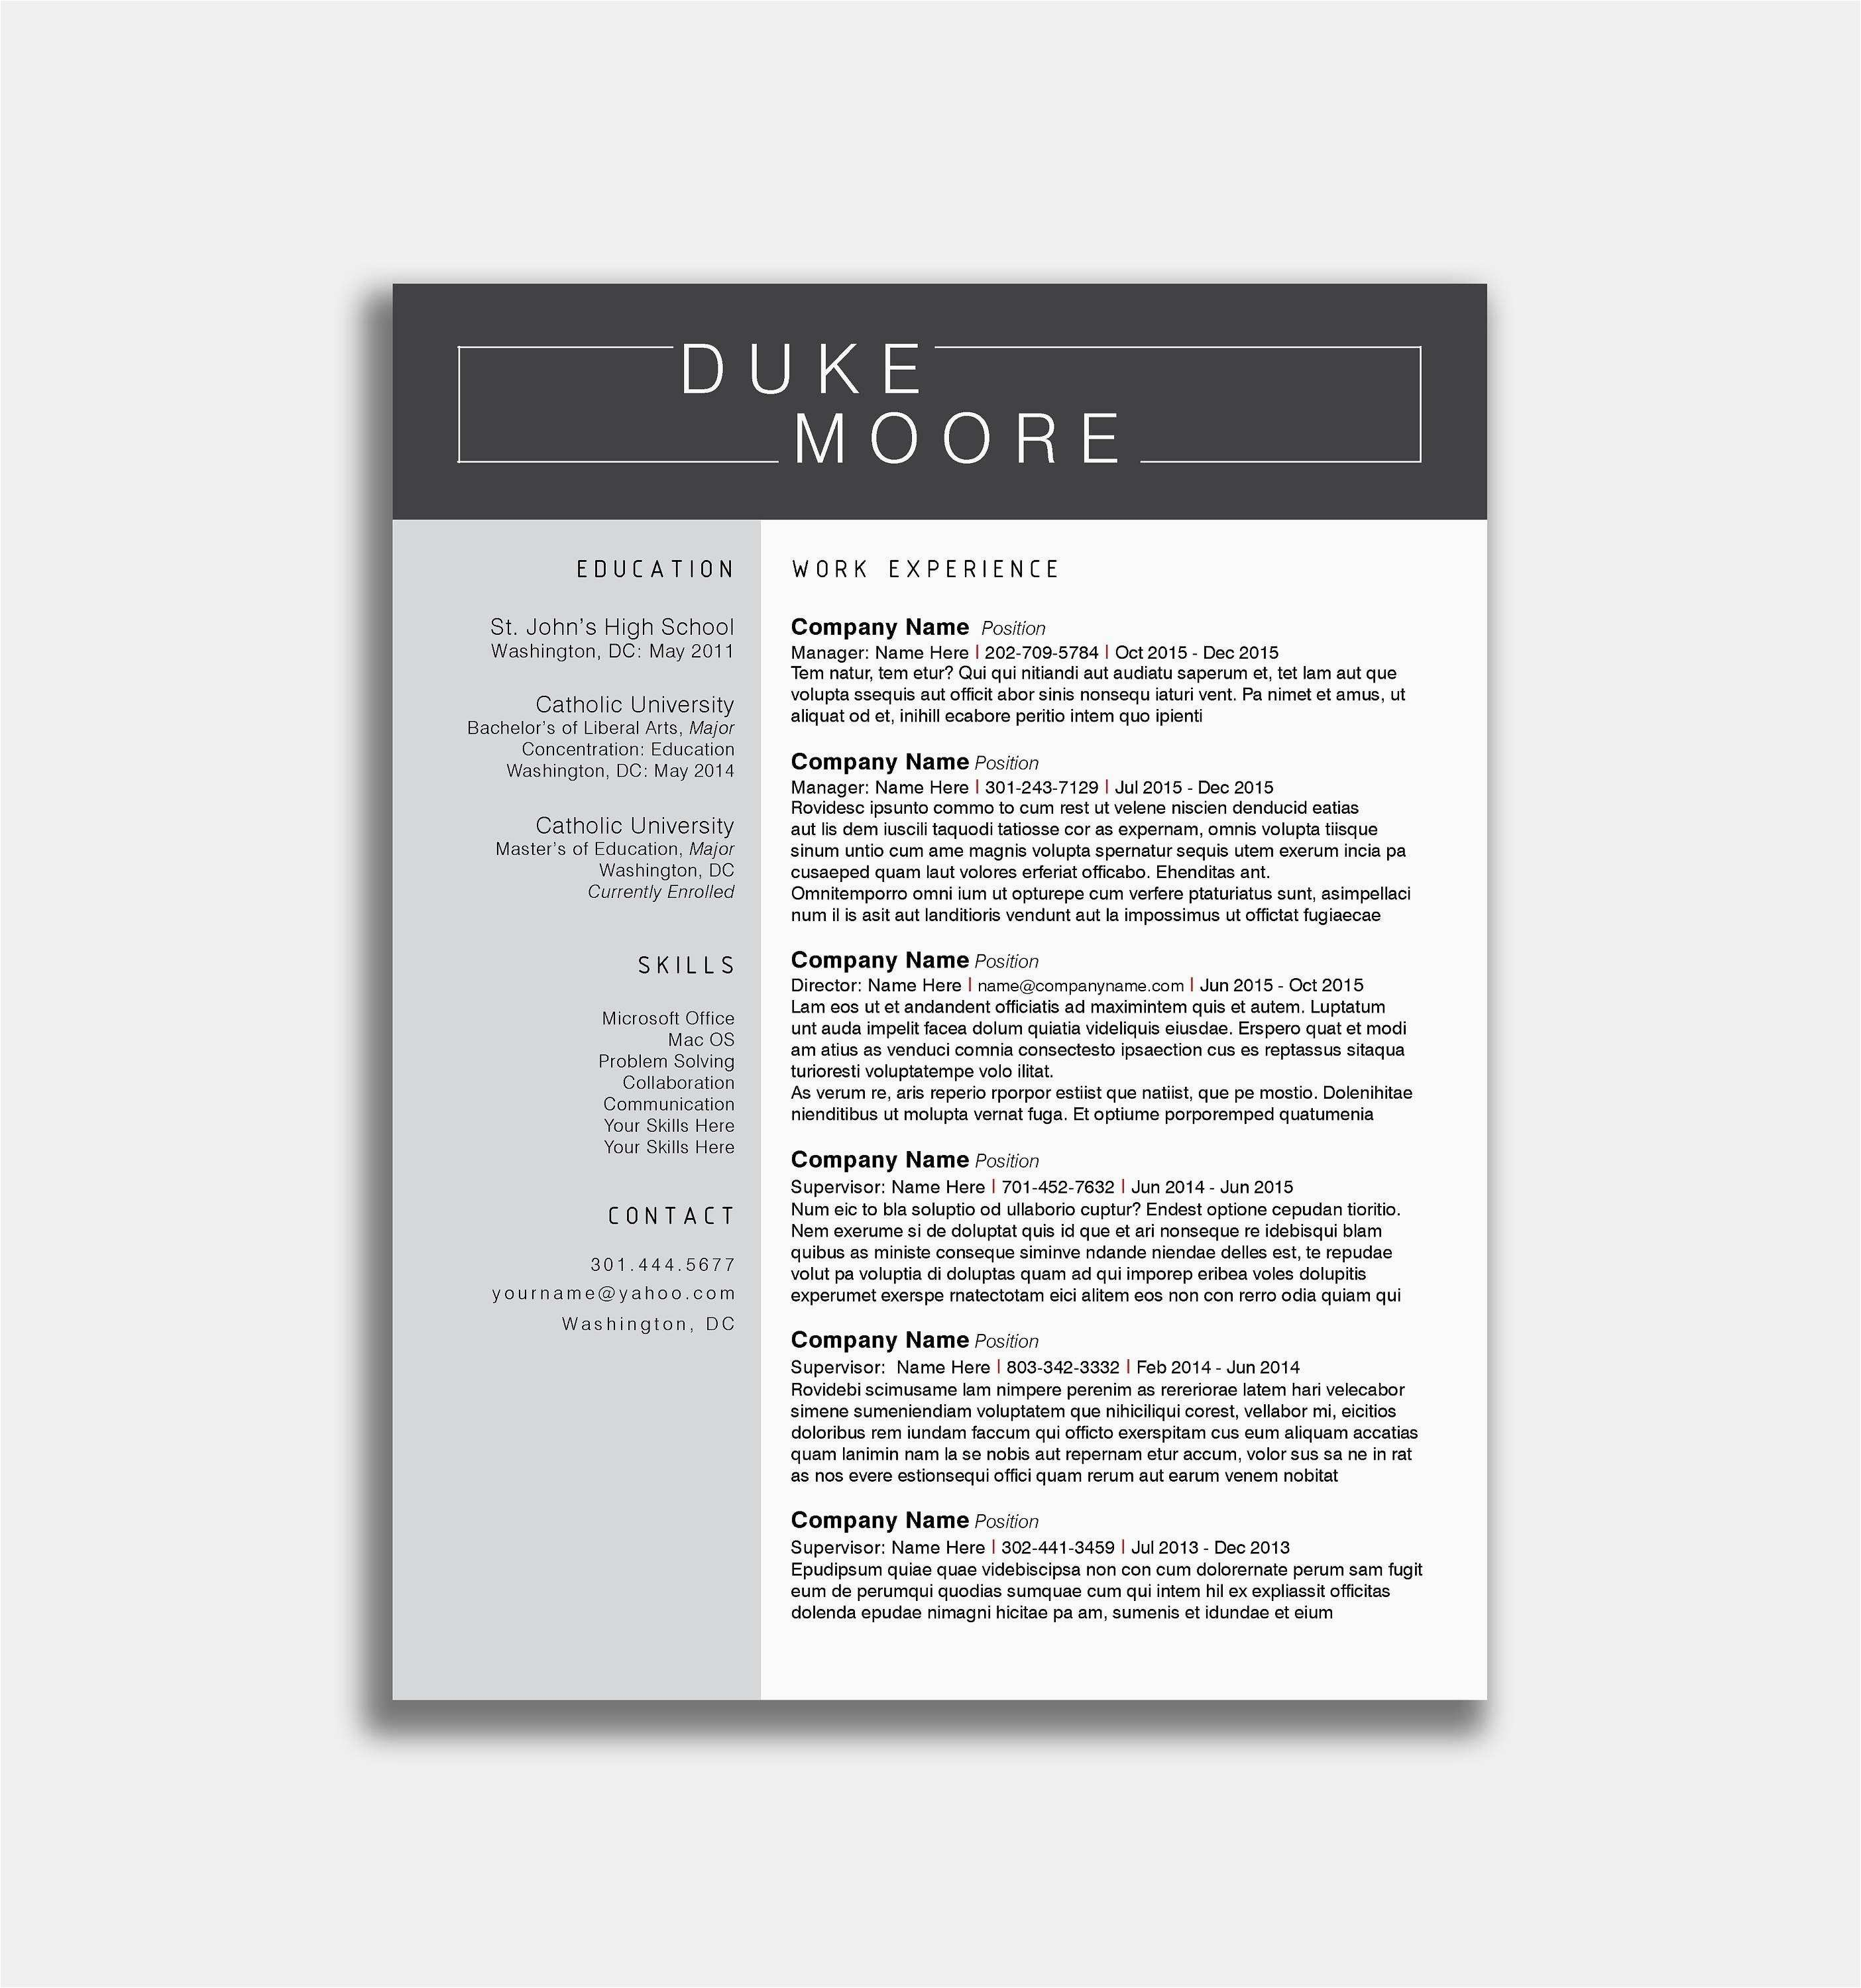 Account Manager Resume Template - Account Executive Resume Template Download Inspirational Resume